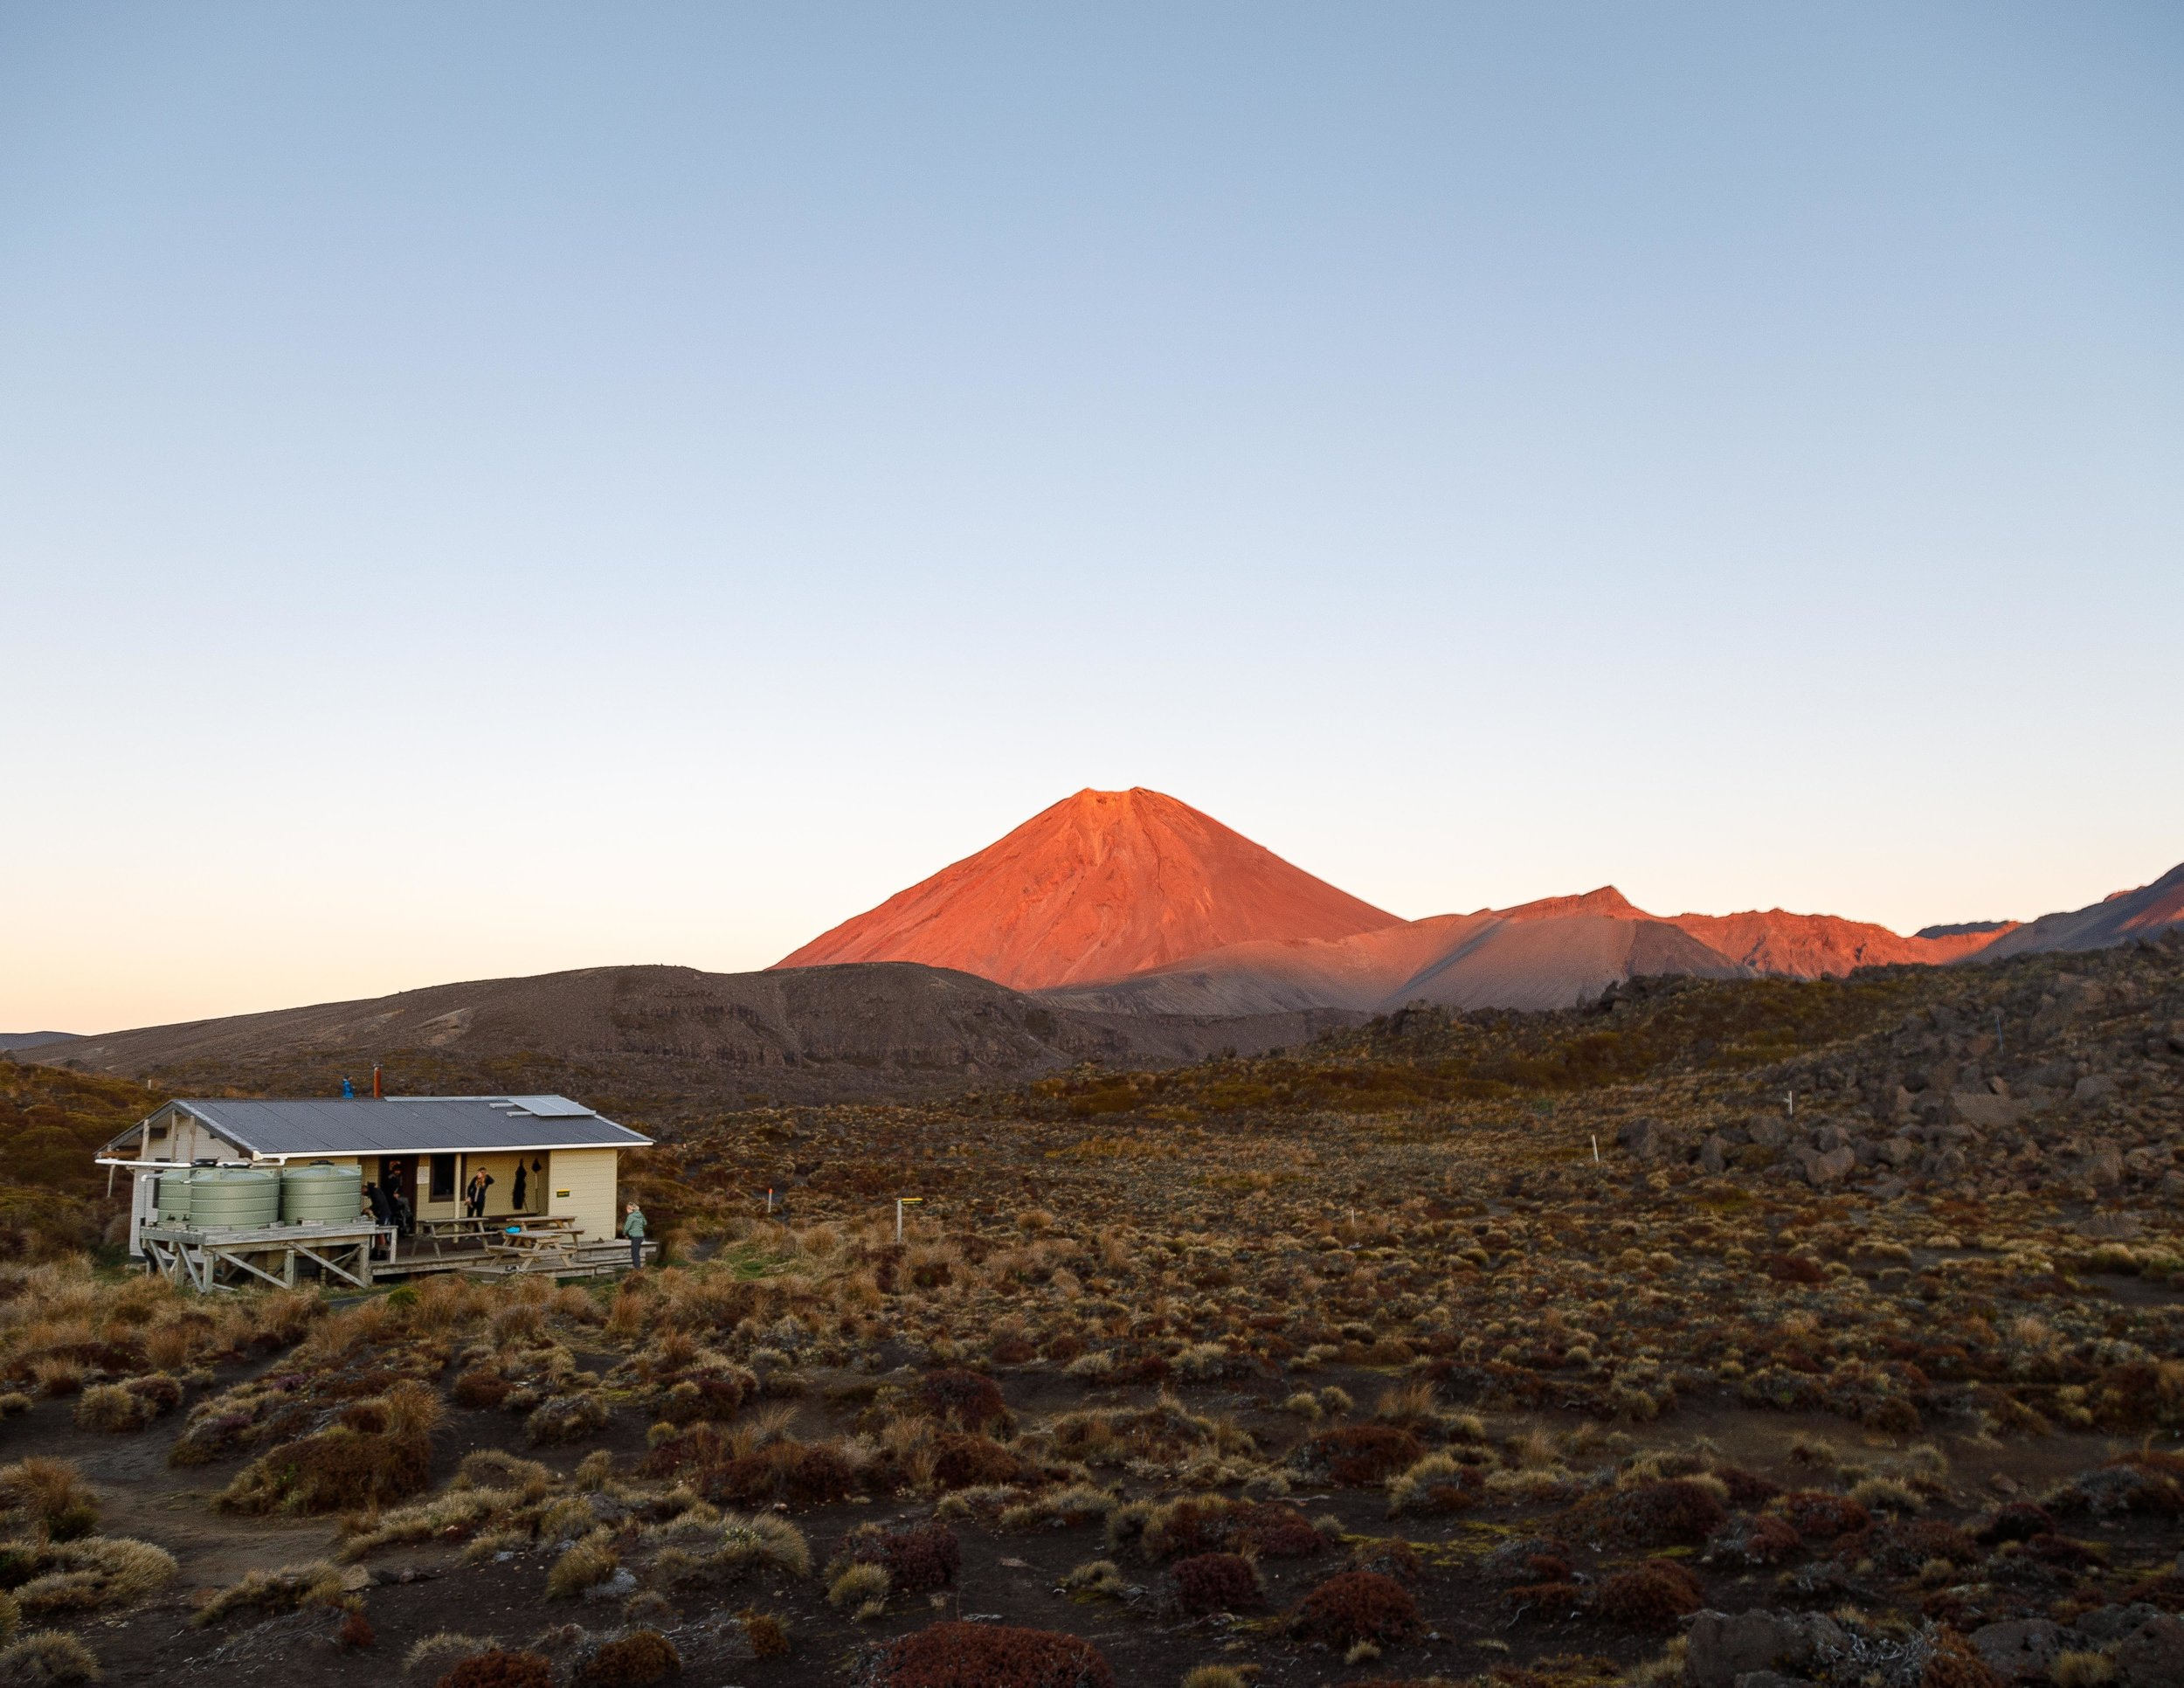 The view to show how special Oturere Hut is at sunrise